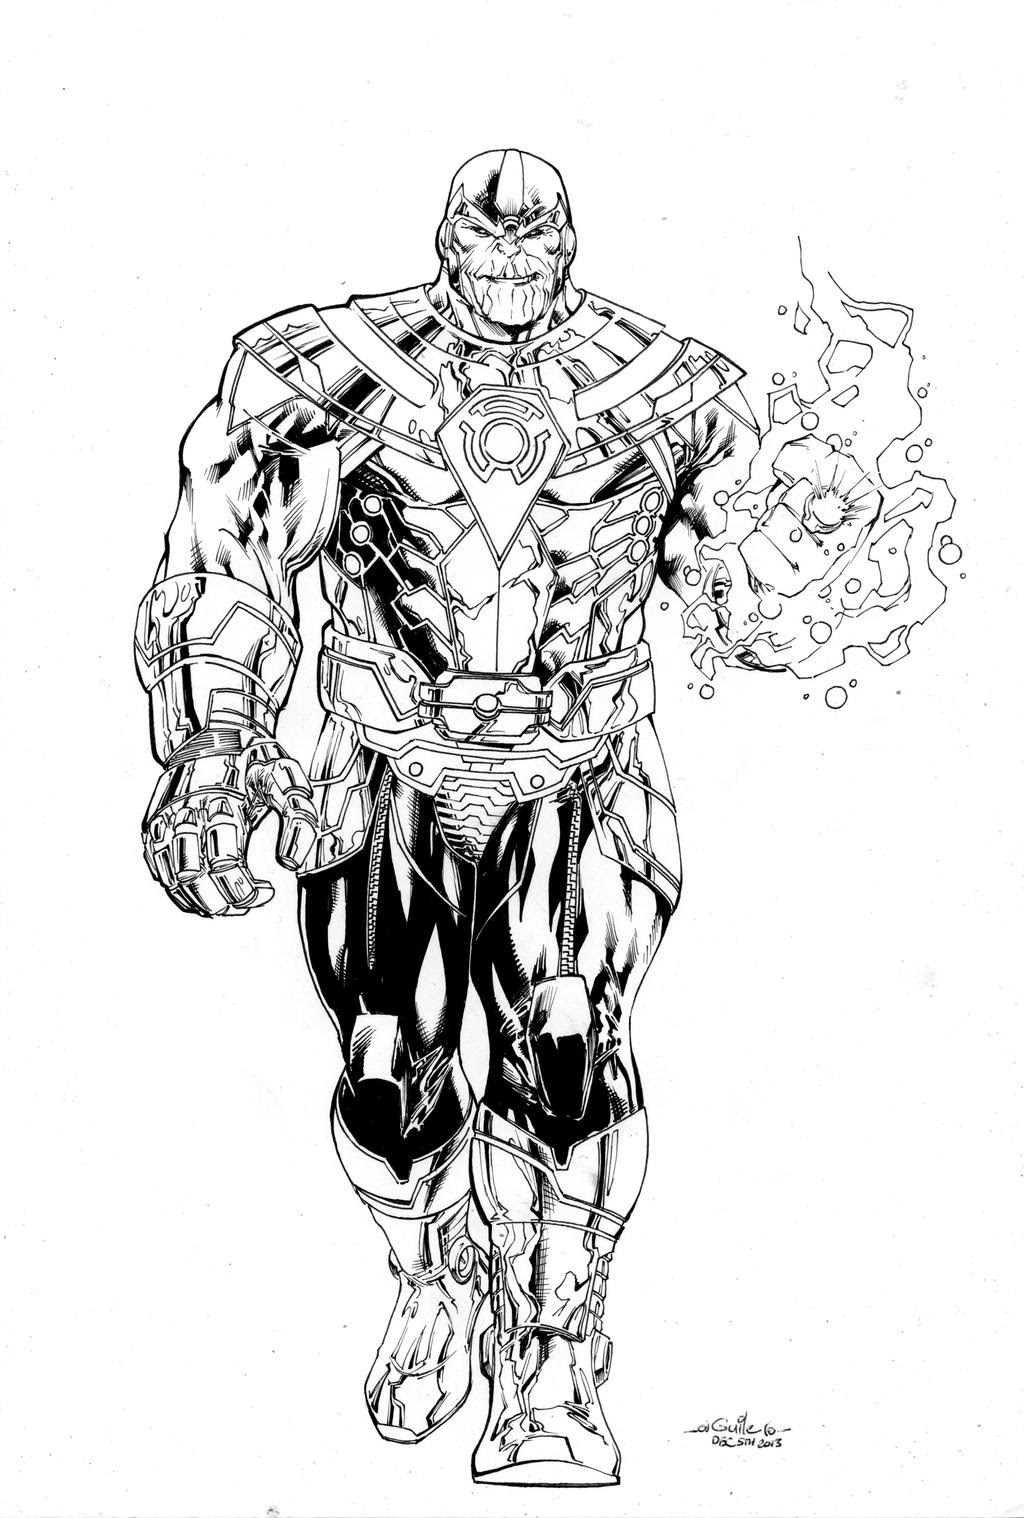 Thanos of Sinestro Corps by SpiderGuile on DeviantArt